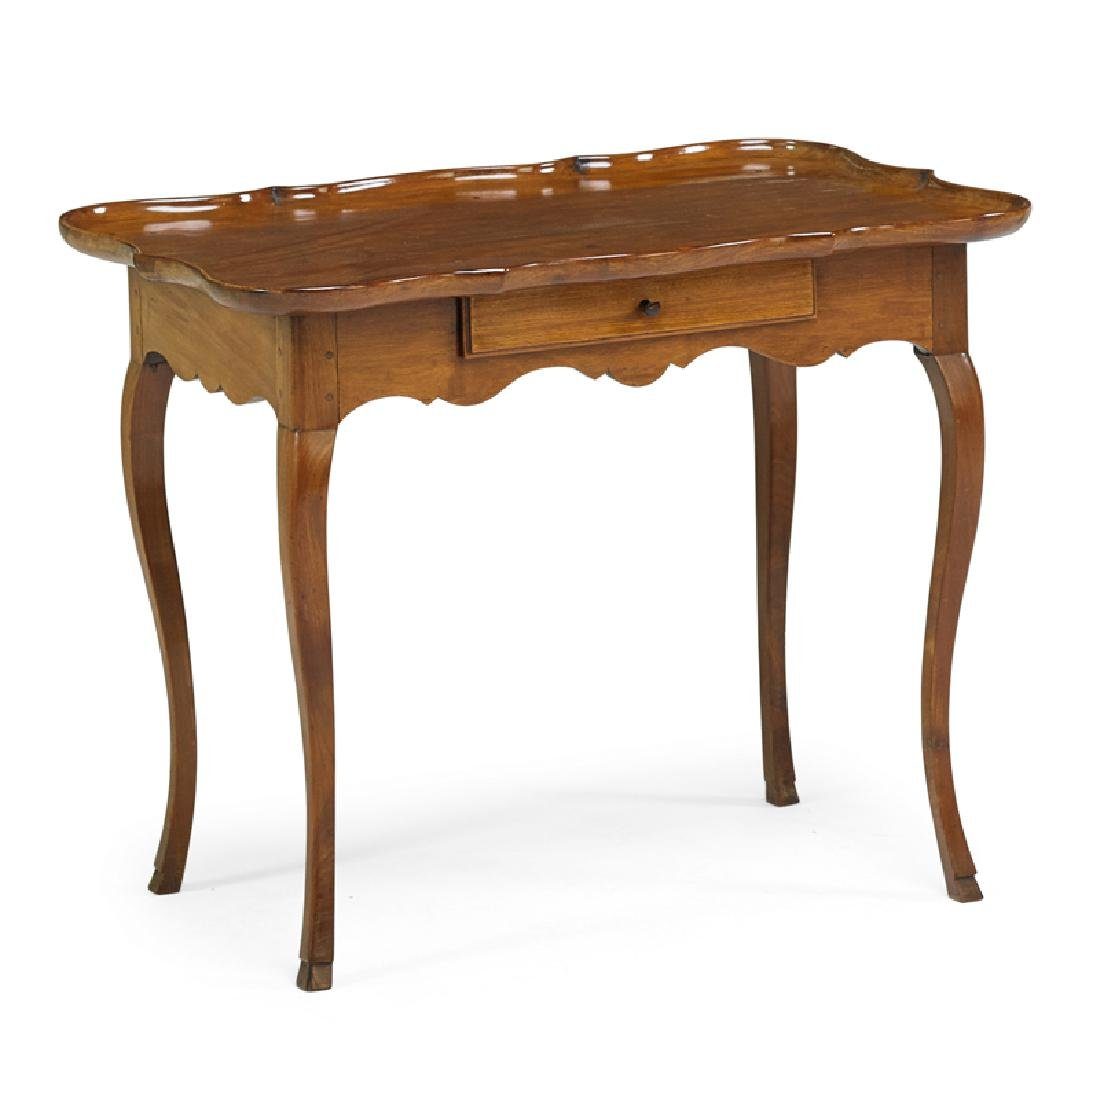 LOUIS XV STYLE CHERRY WORK TABLE